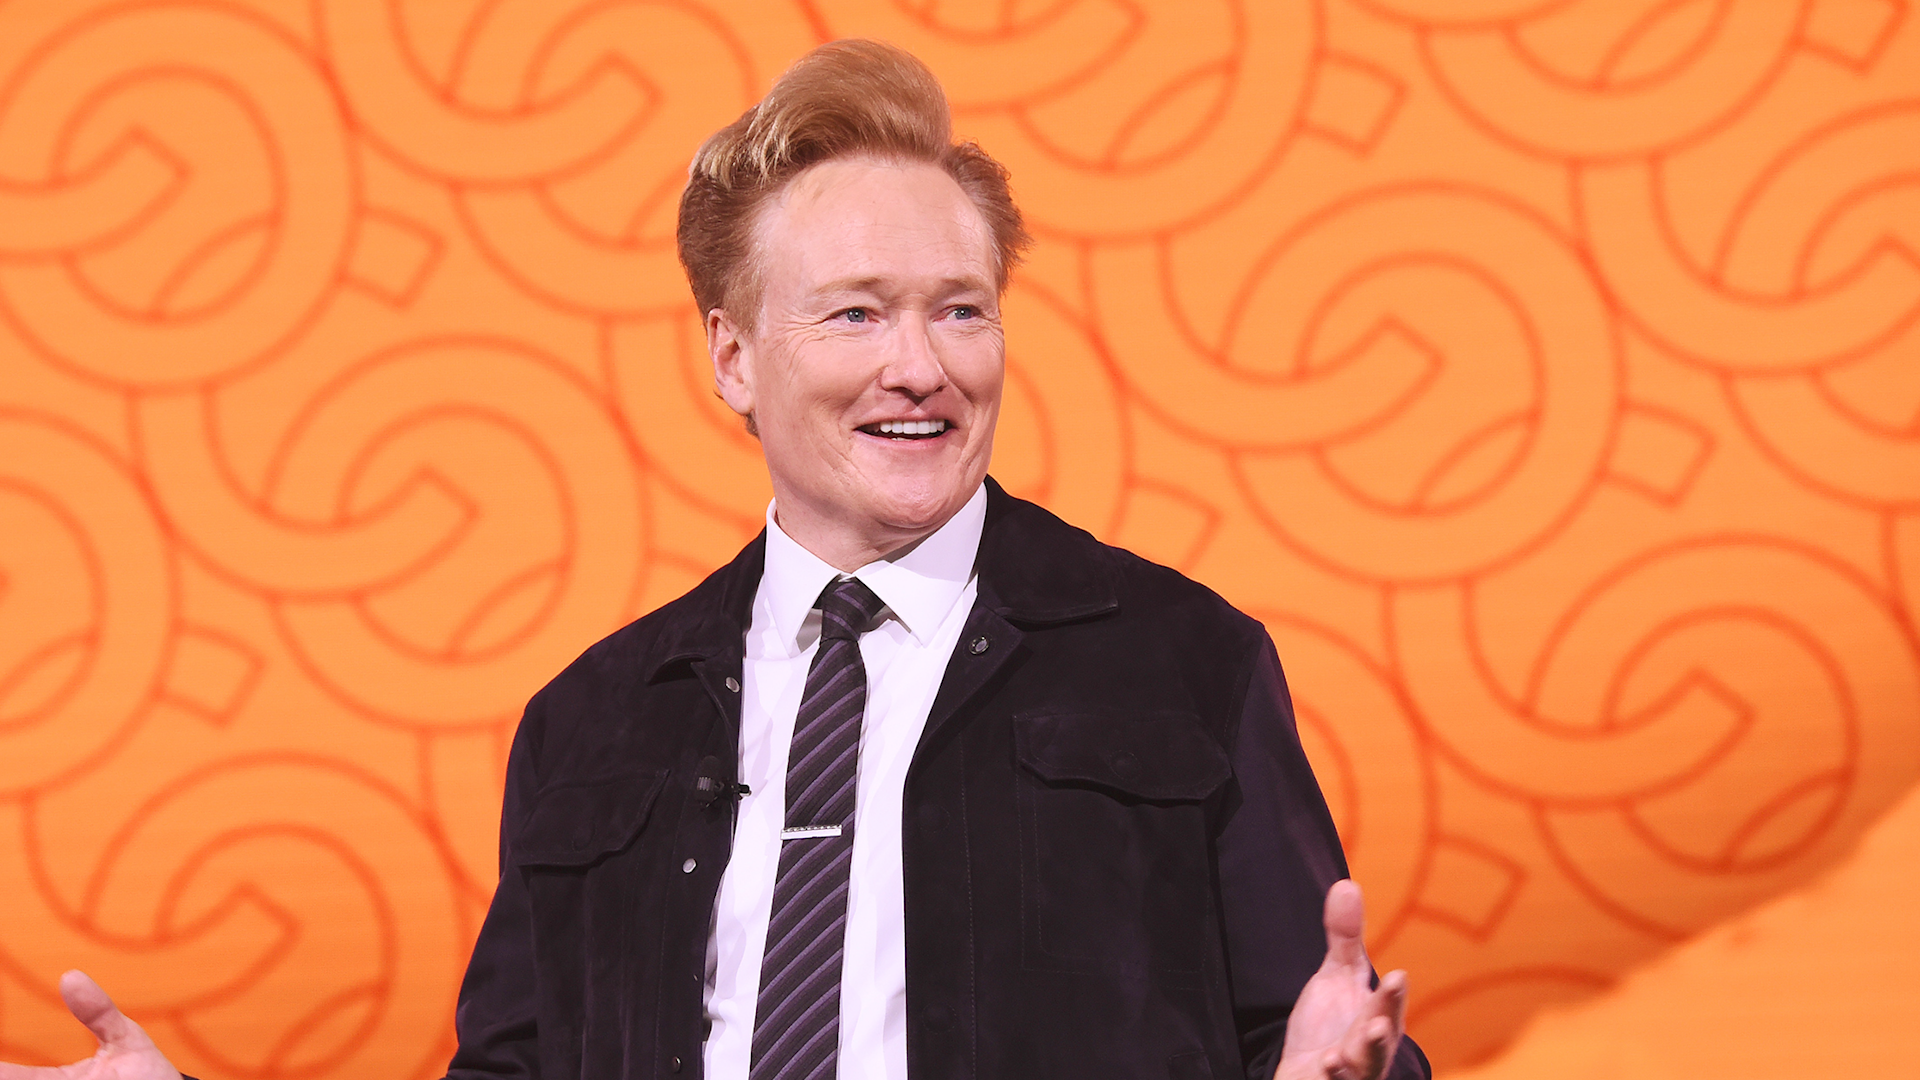 Conan O'Brien officially sets an end date for his late night talk show on TBS